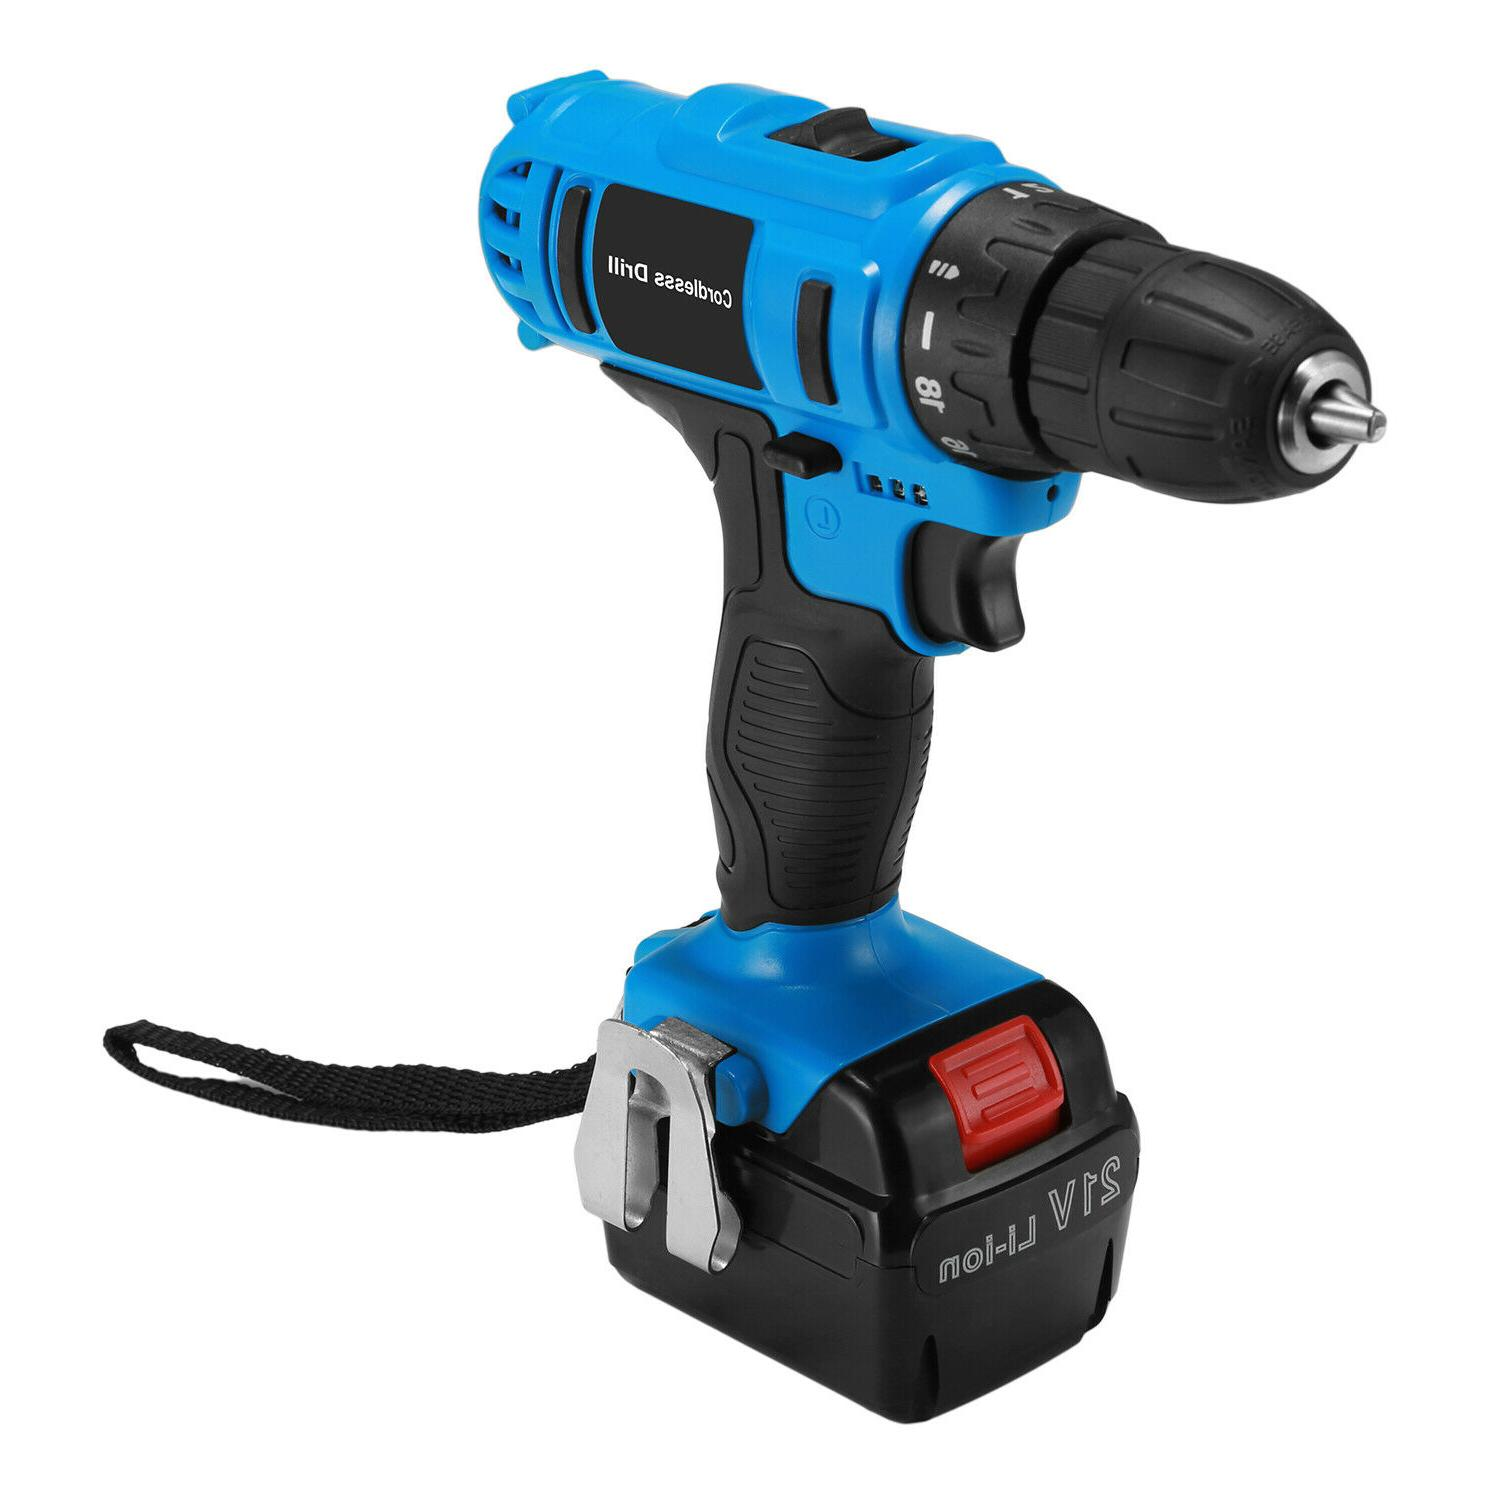 21V Cordless Kit Driver Drill Charger Workshop battery